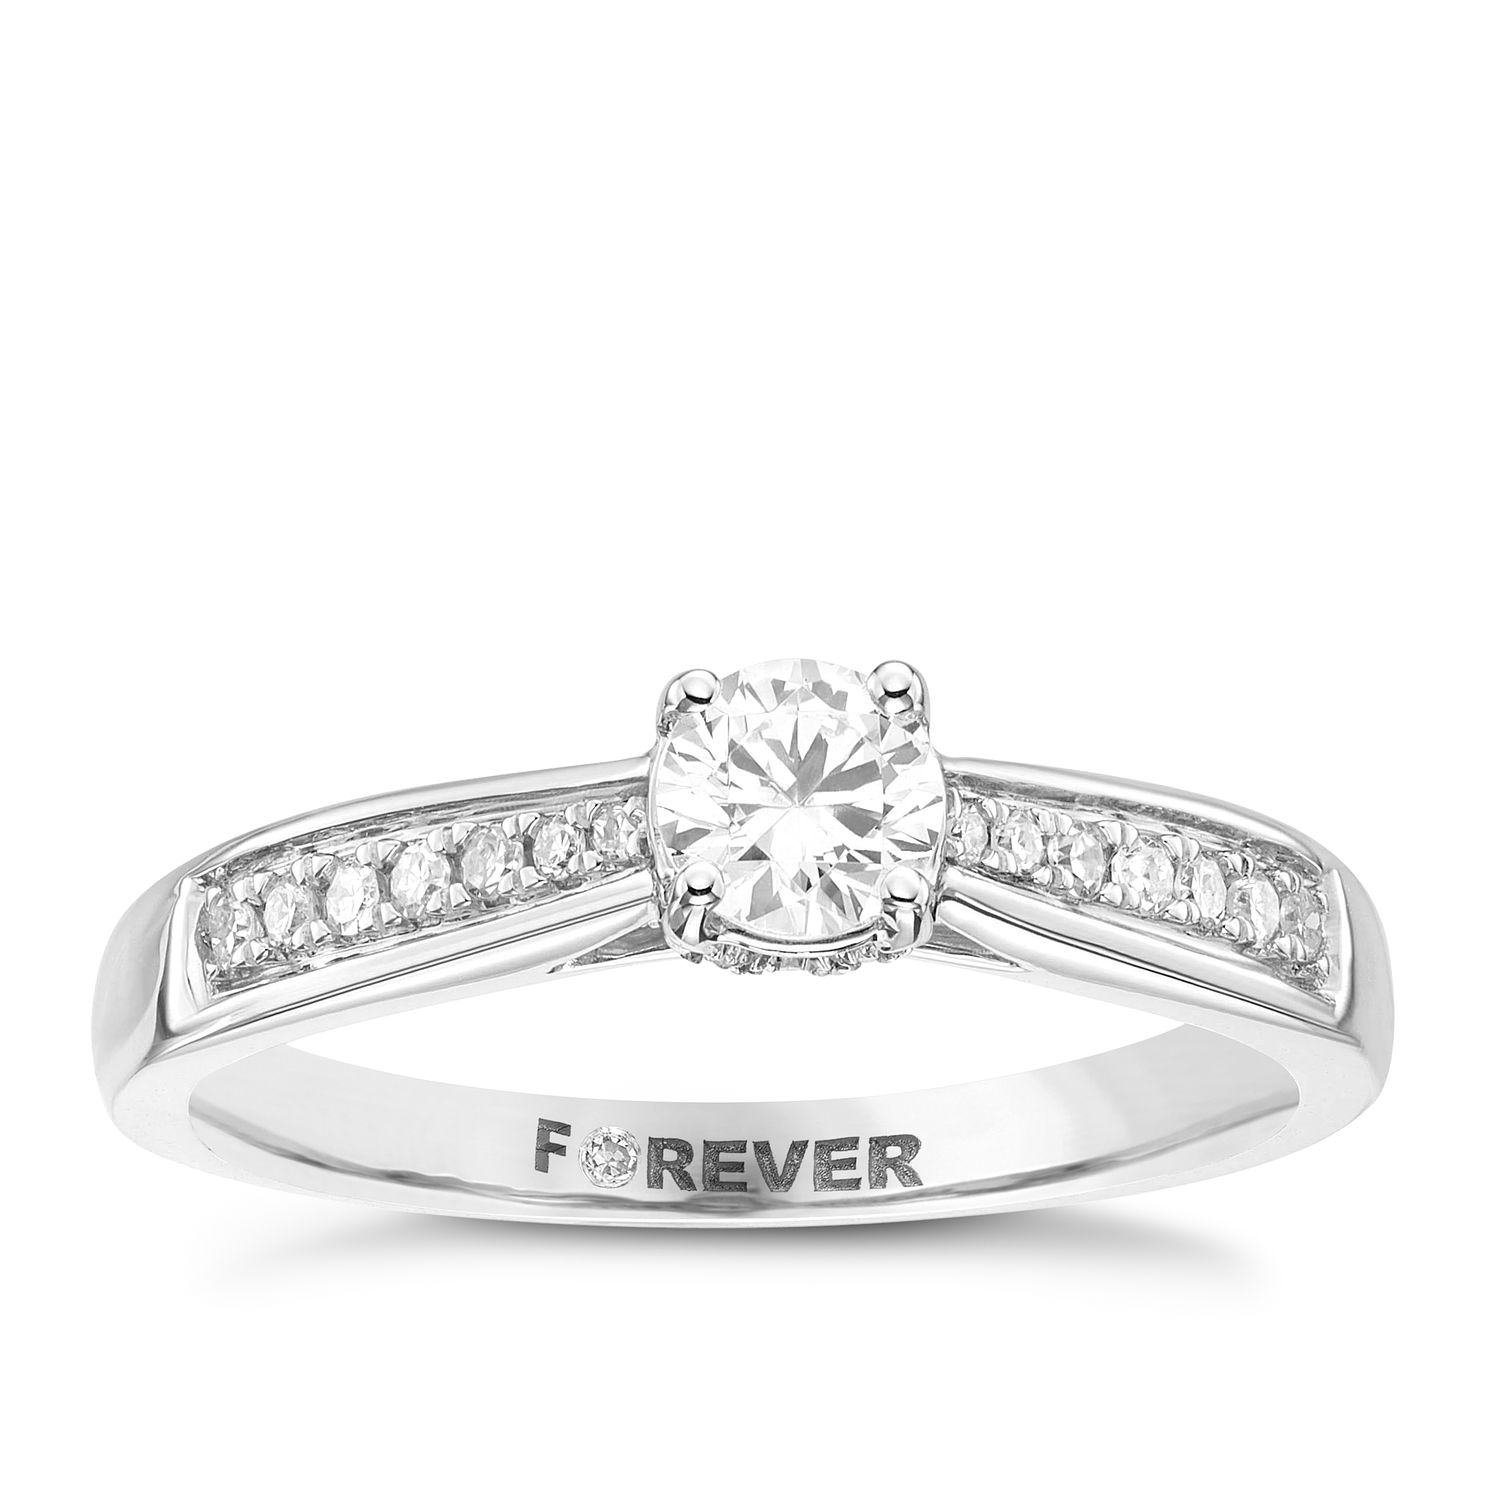 index forever ladys wedding generations designed l platinum collections jewellery online fbpl sky for band ring rings shop